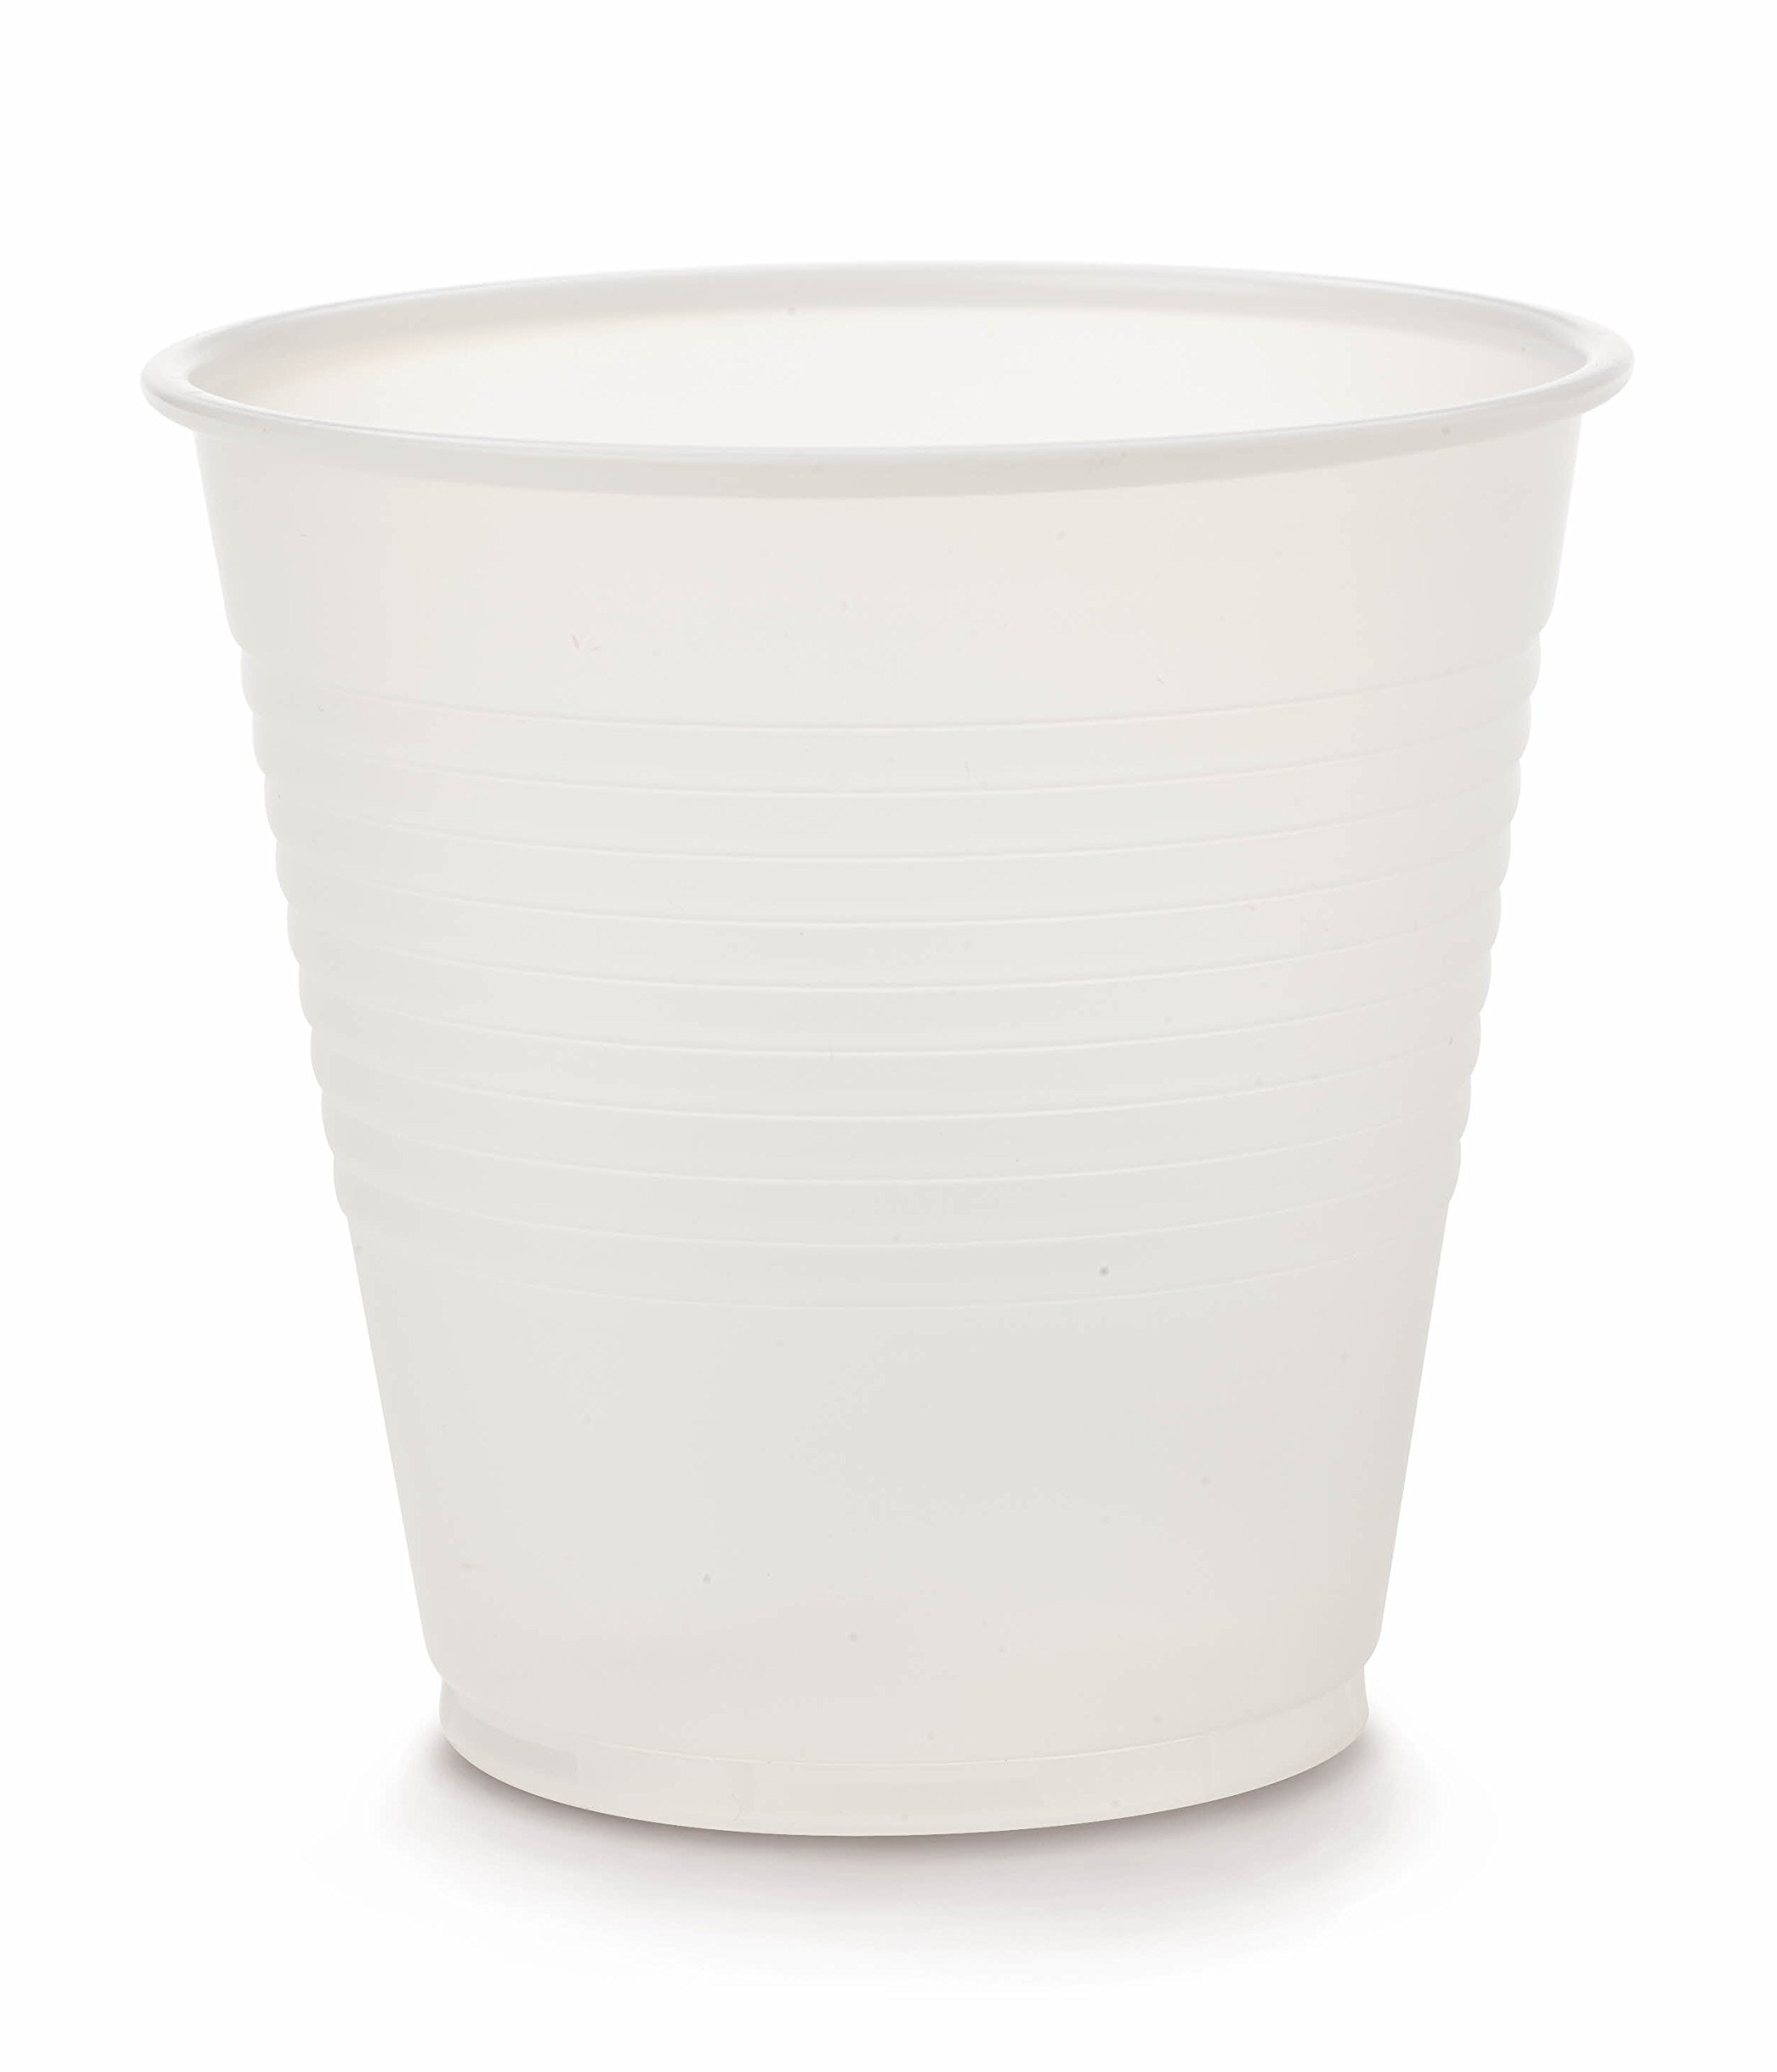 Medline NON03005 Disposable Cold Plastic Drinking Cup, 5 oz (Pack of 2500)